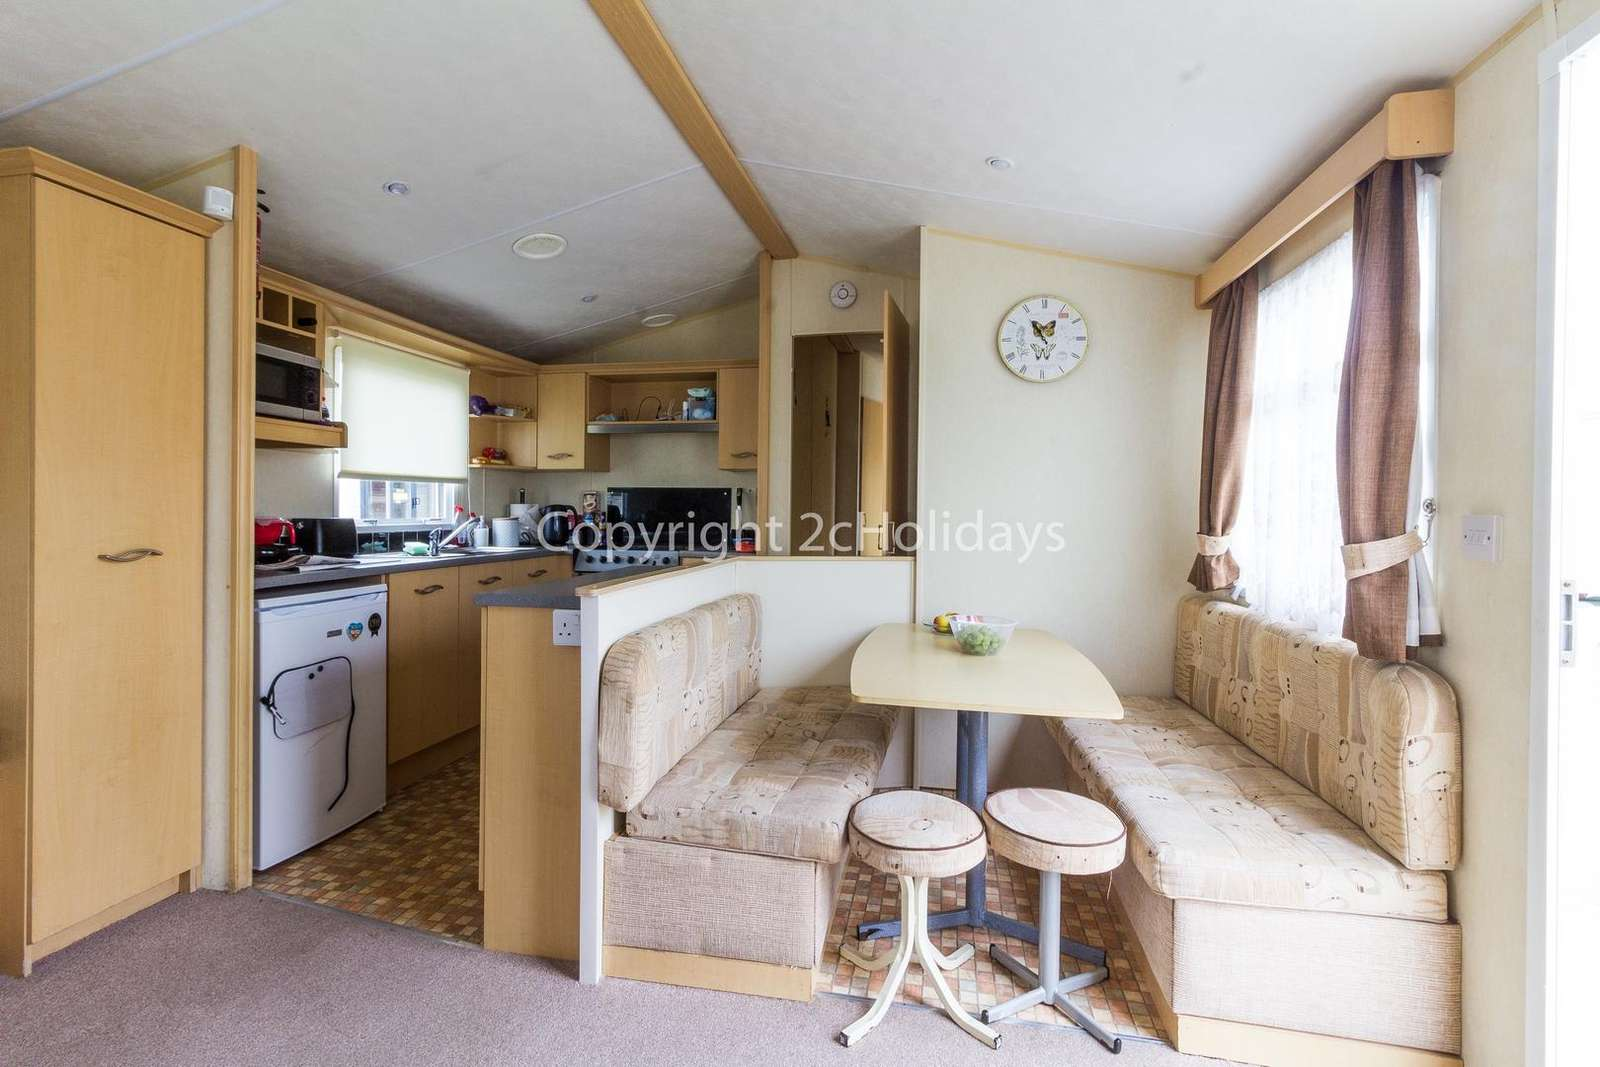 Open plan kitchen/diner, ideal for families